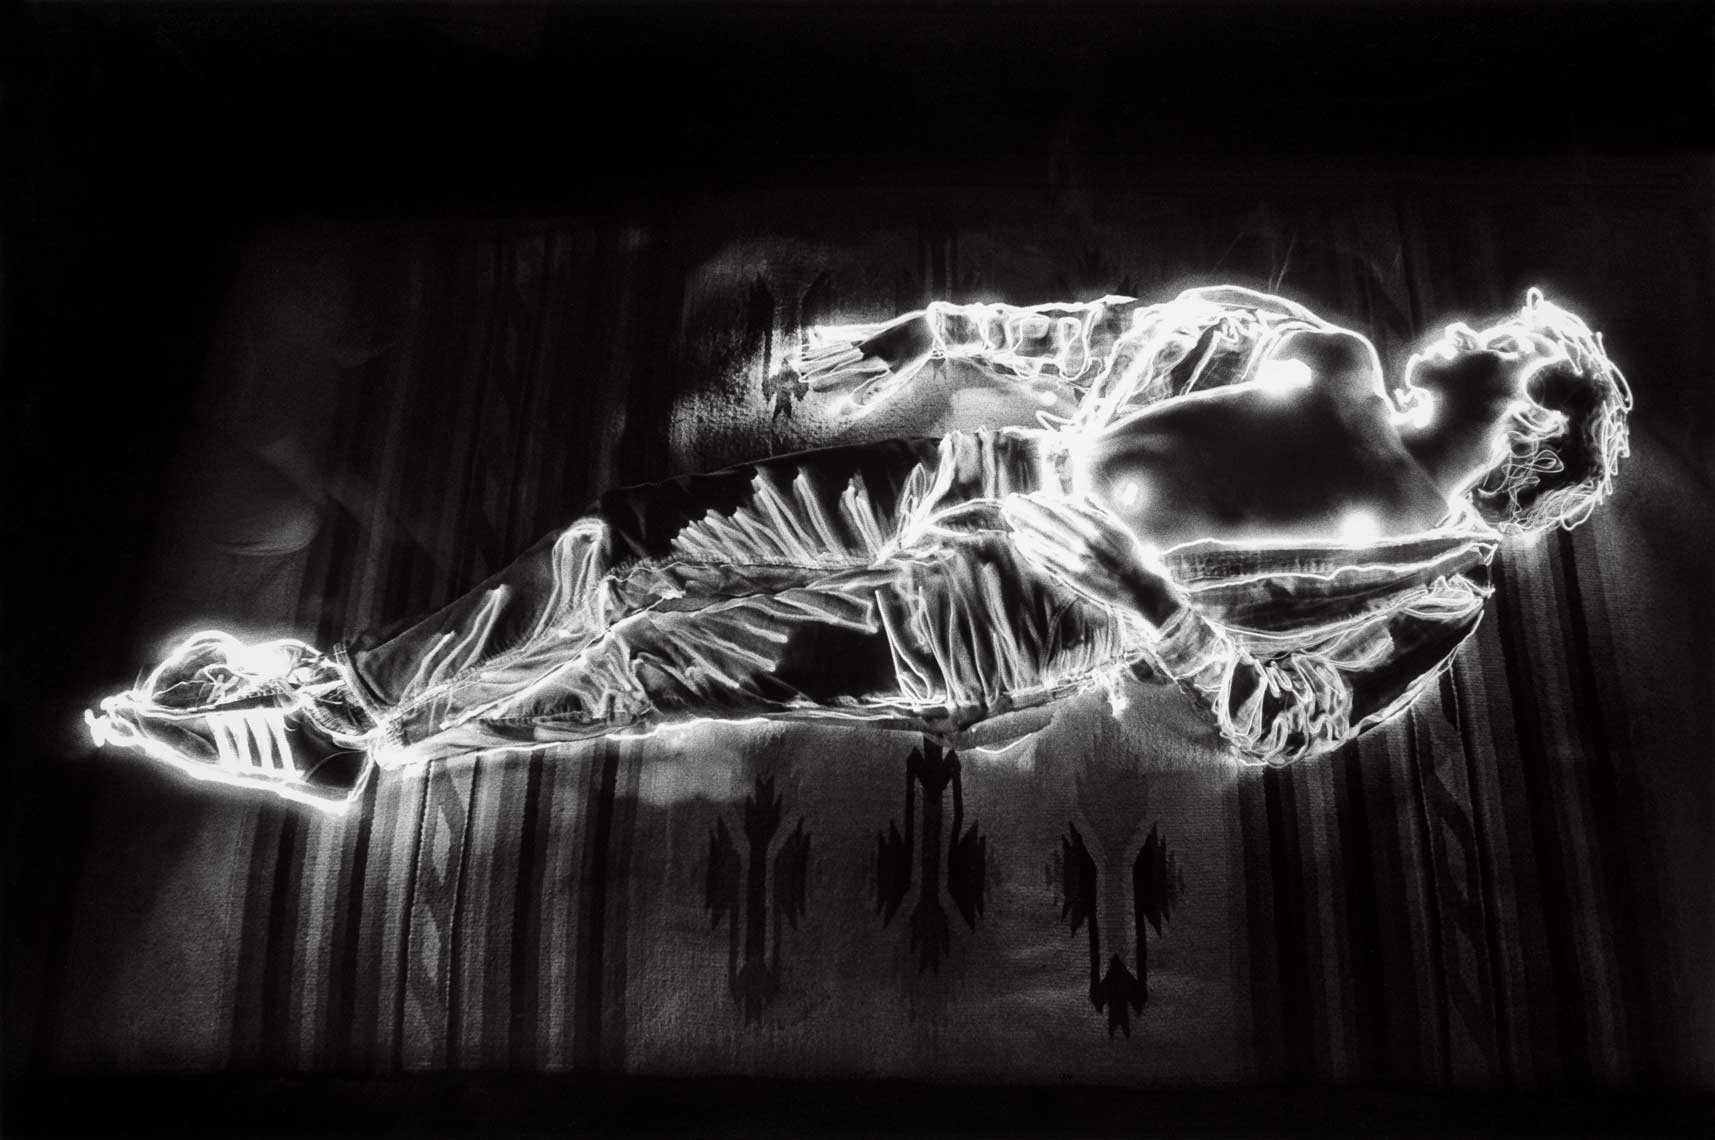 David Lebe; Boy Dream,1981, light drawing, black and white photograph